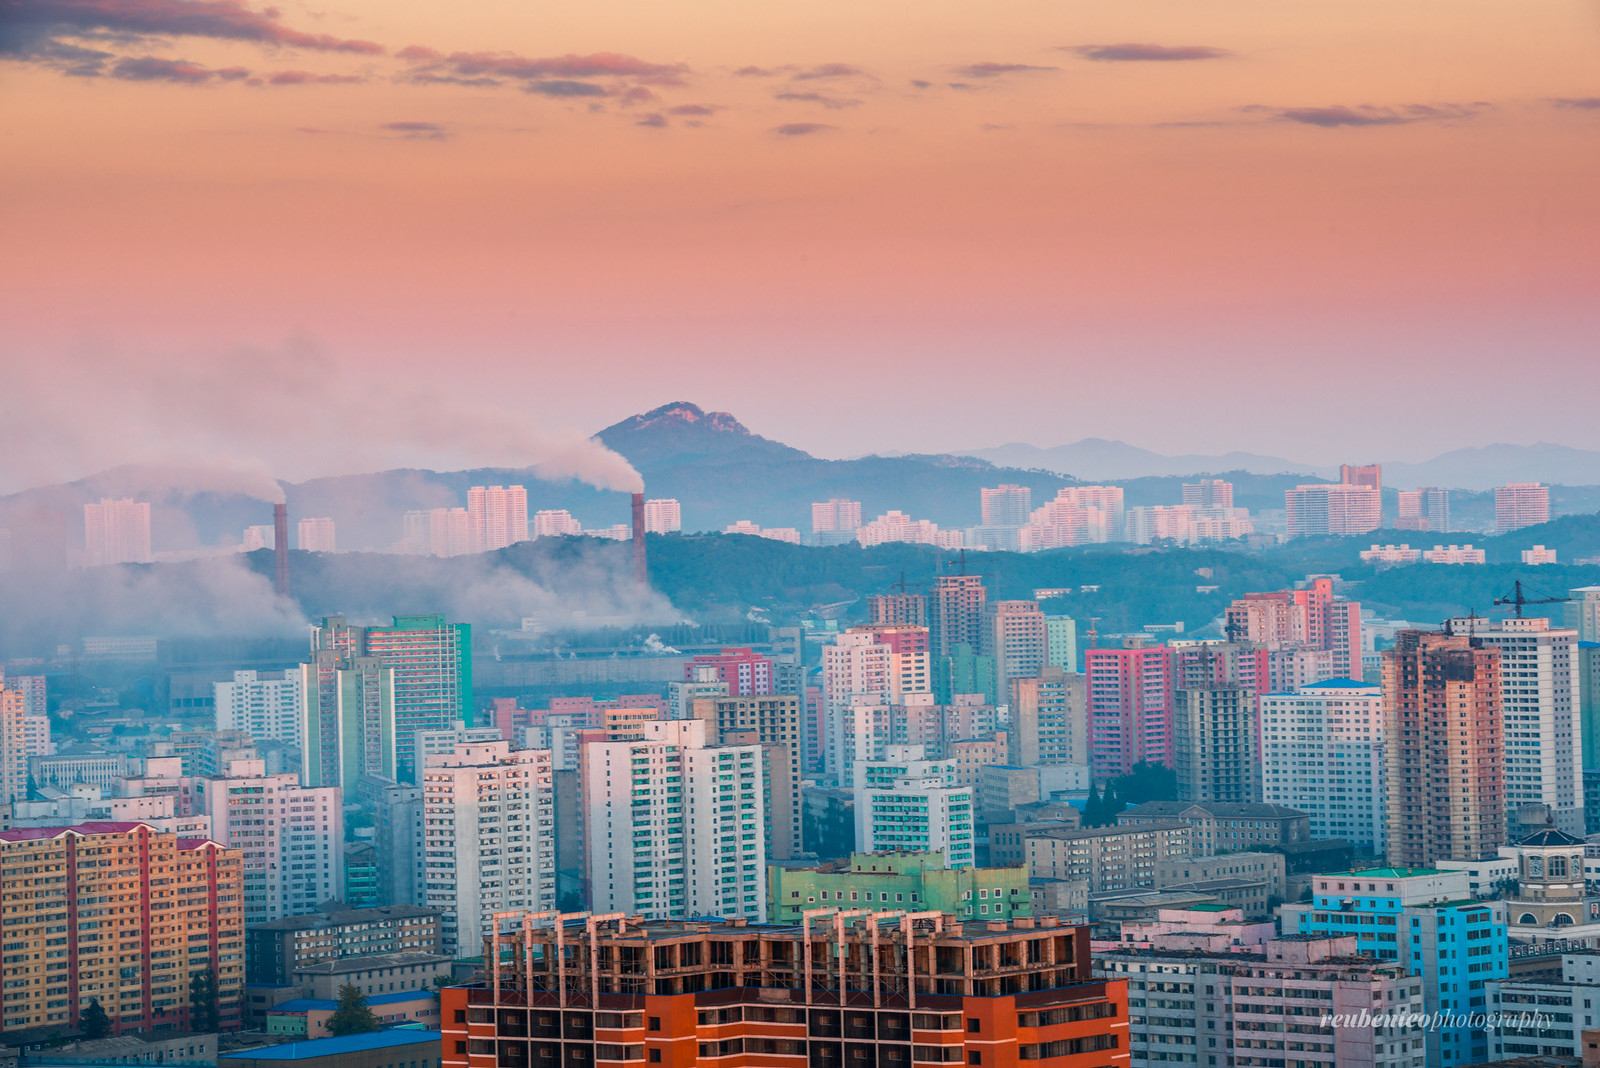 Sunrise in the Capital of Pyongyang City